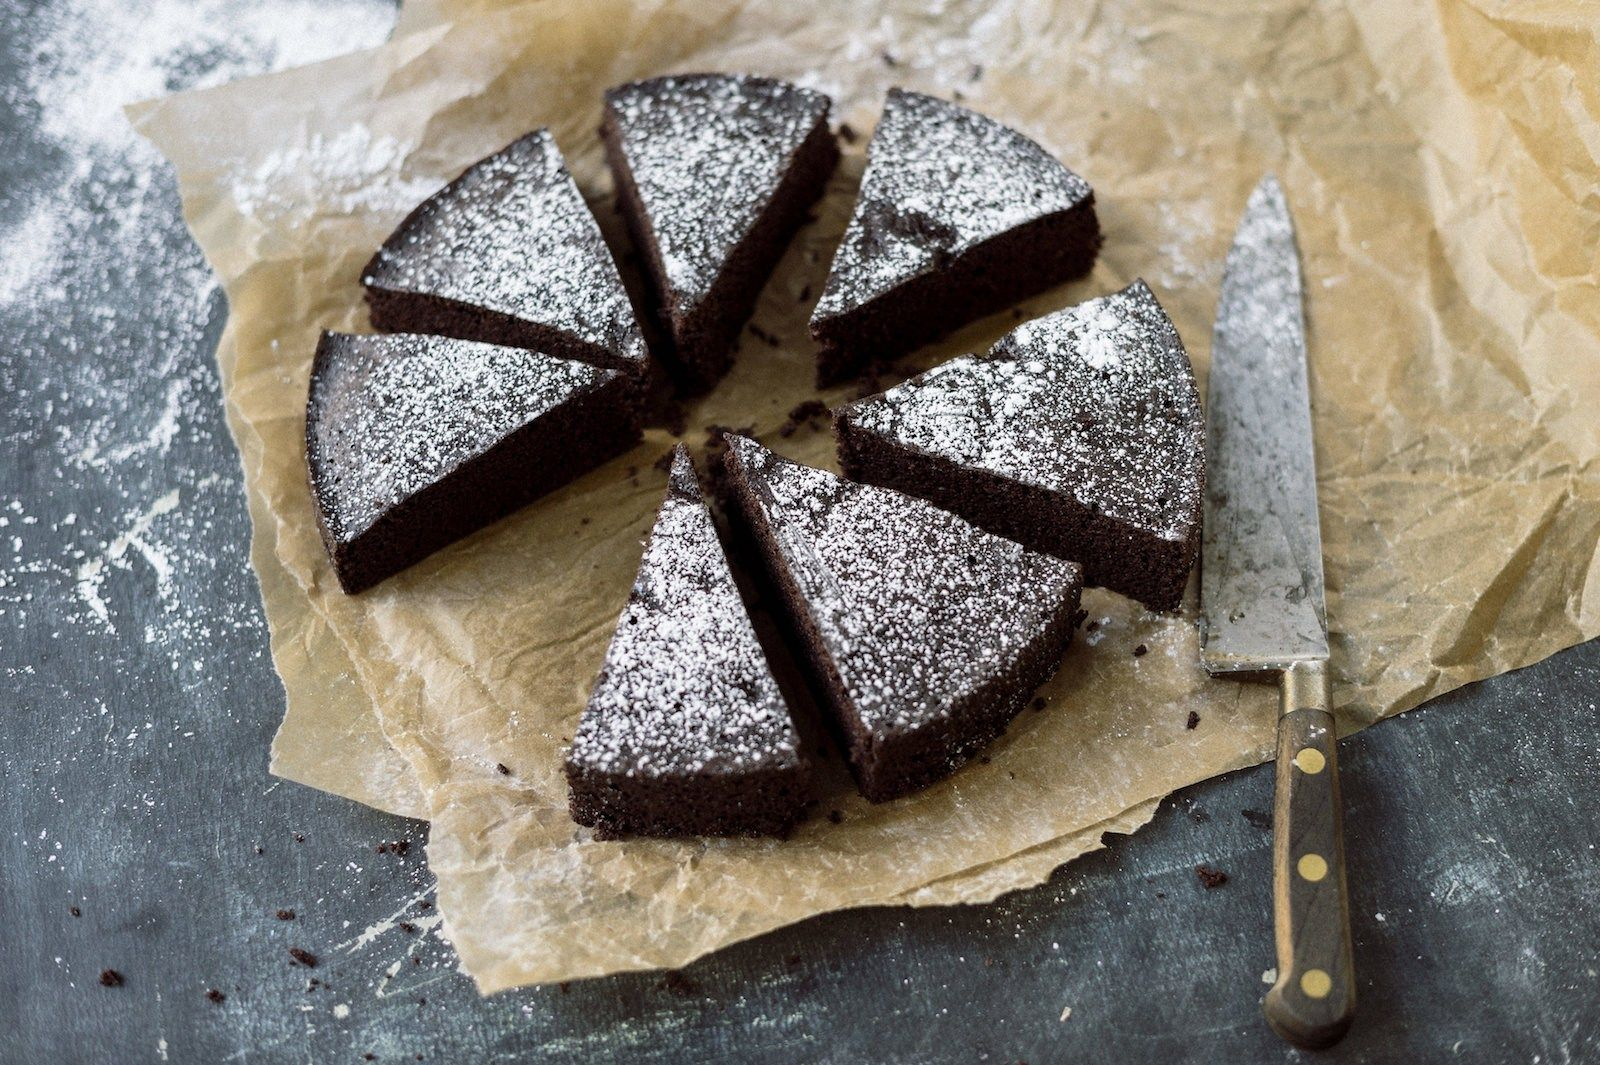 The Secret Ingredient That Makes Chocolate Desserts So Much Better